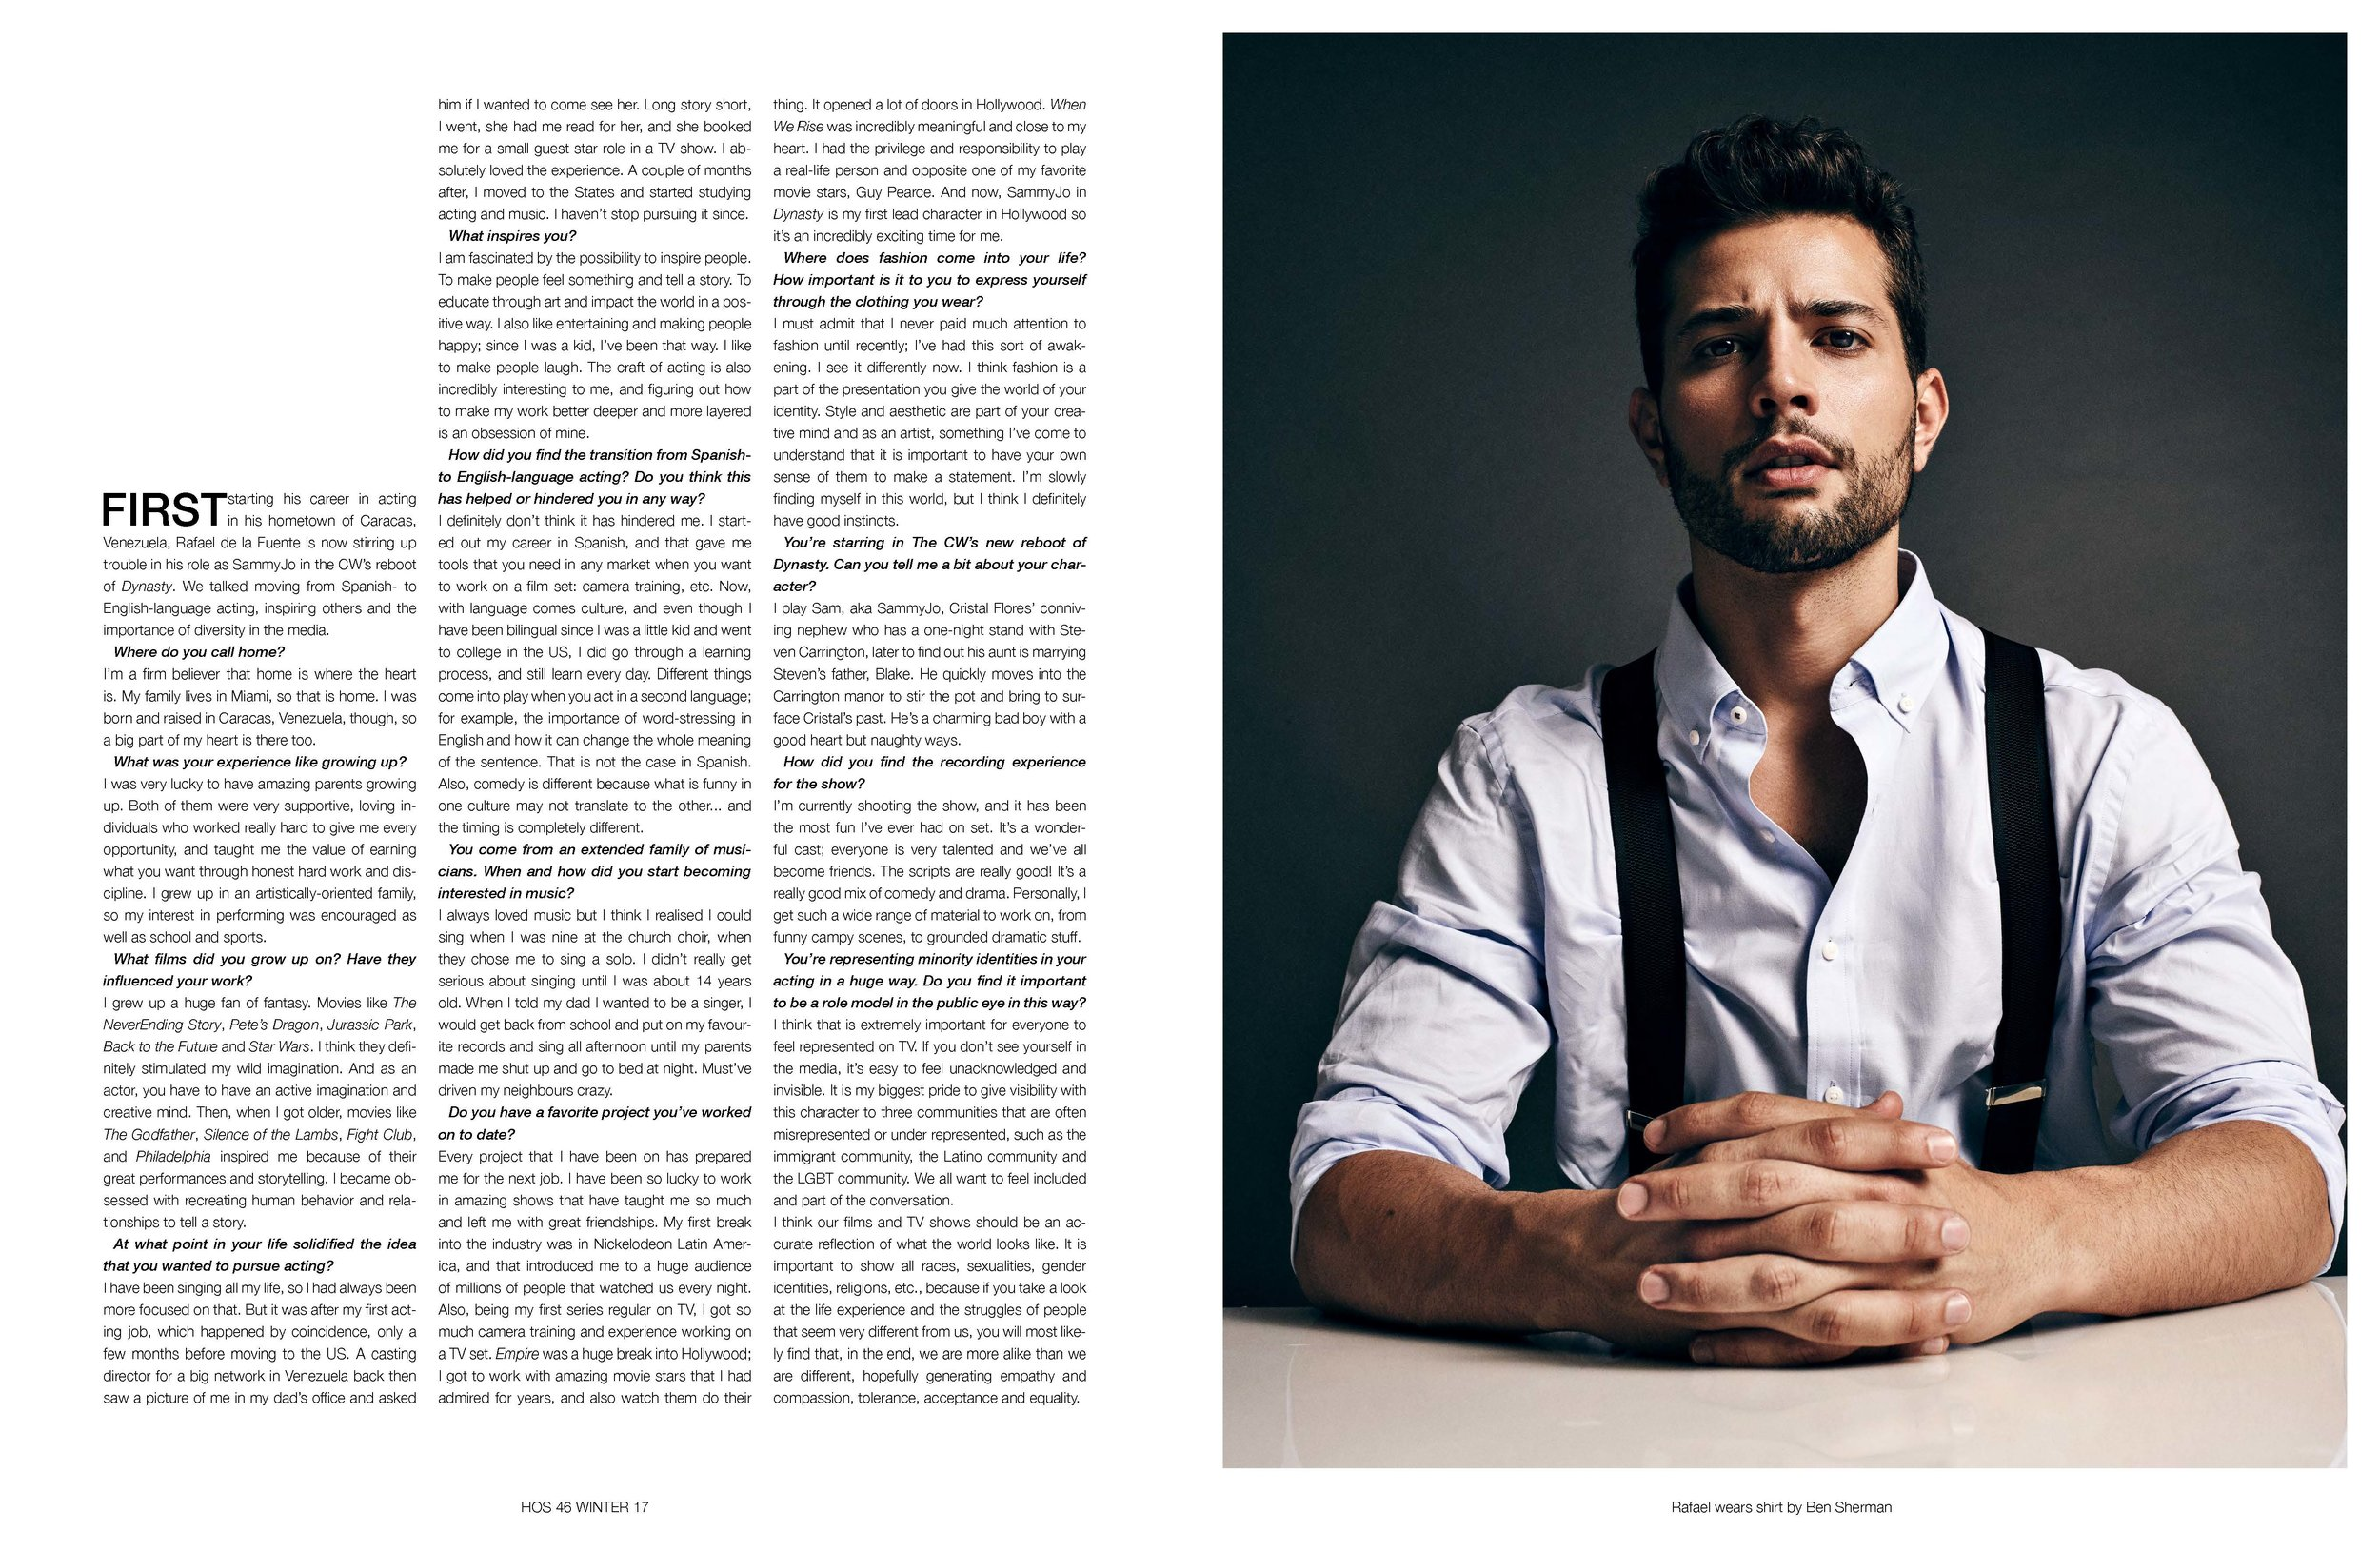 """Rafael de la Fuente - Interview - """"I AM FASCINATED BY THE POSSIBILITY OF INSPIRING PEOPLE""""(PHOTOGRAPHER: BENJO ARWAS // STYLIST: ADENA ROHATINER // Hair Stylist: GRACE PHILLIPS)"""